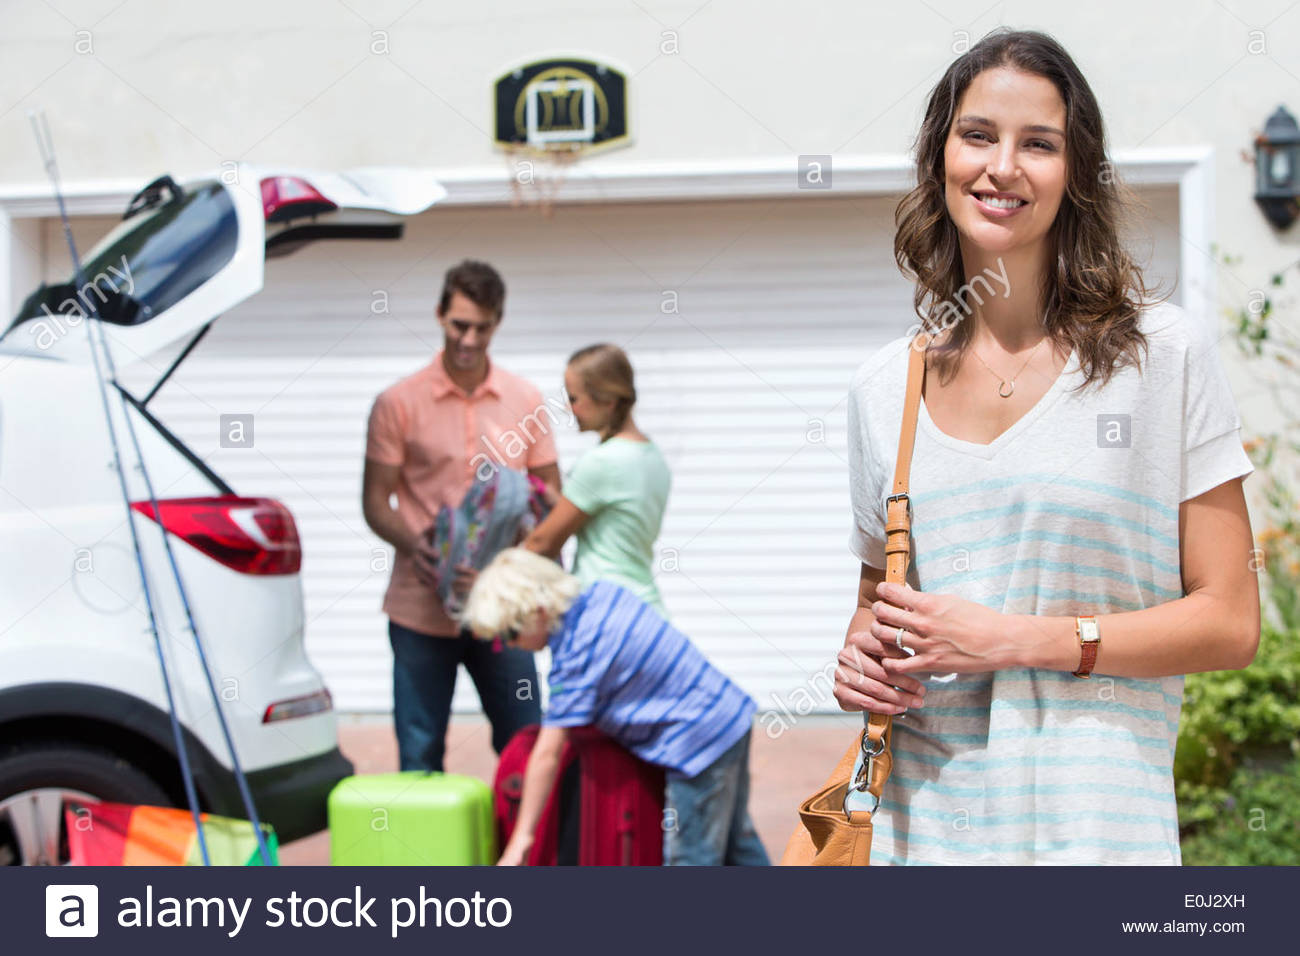 Portrait of smiling woman in driveway with family packing car in background - Stock Image